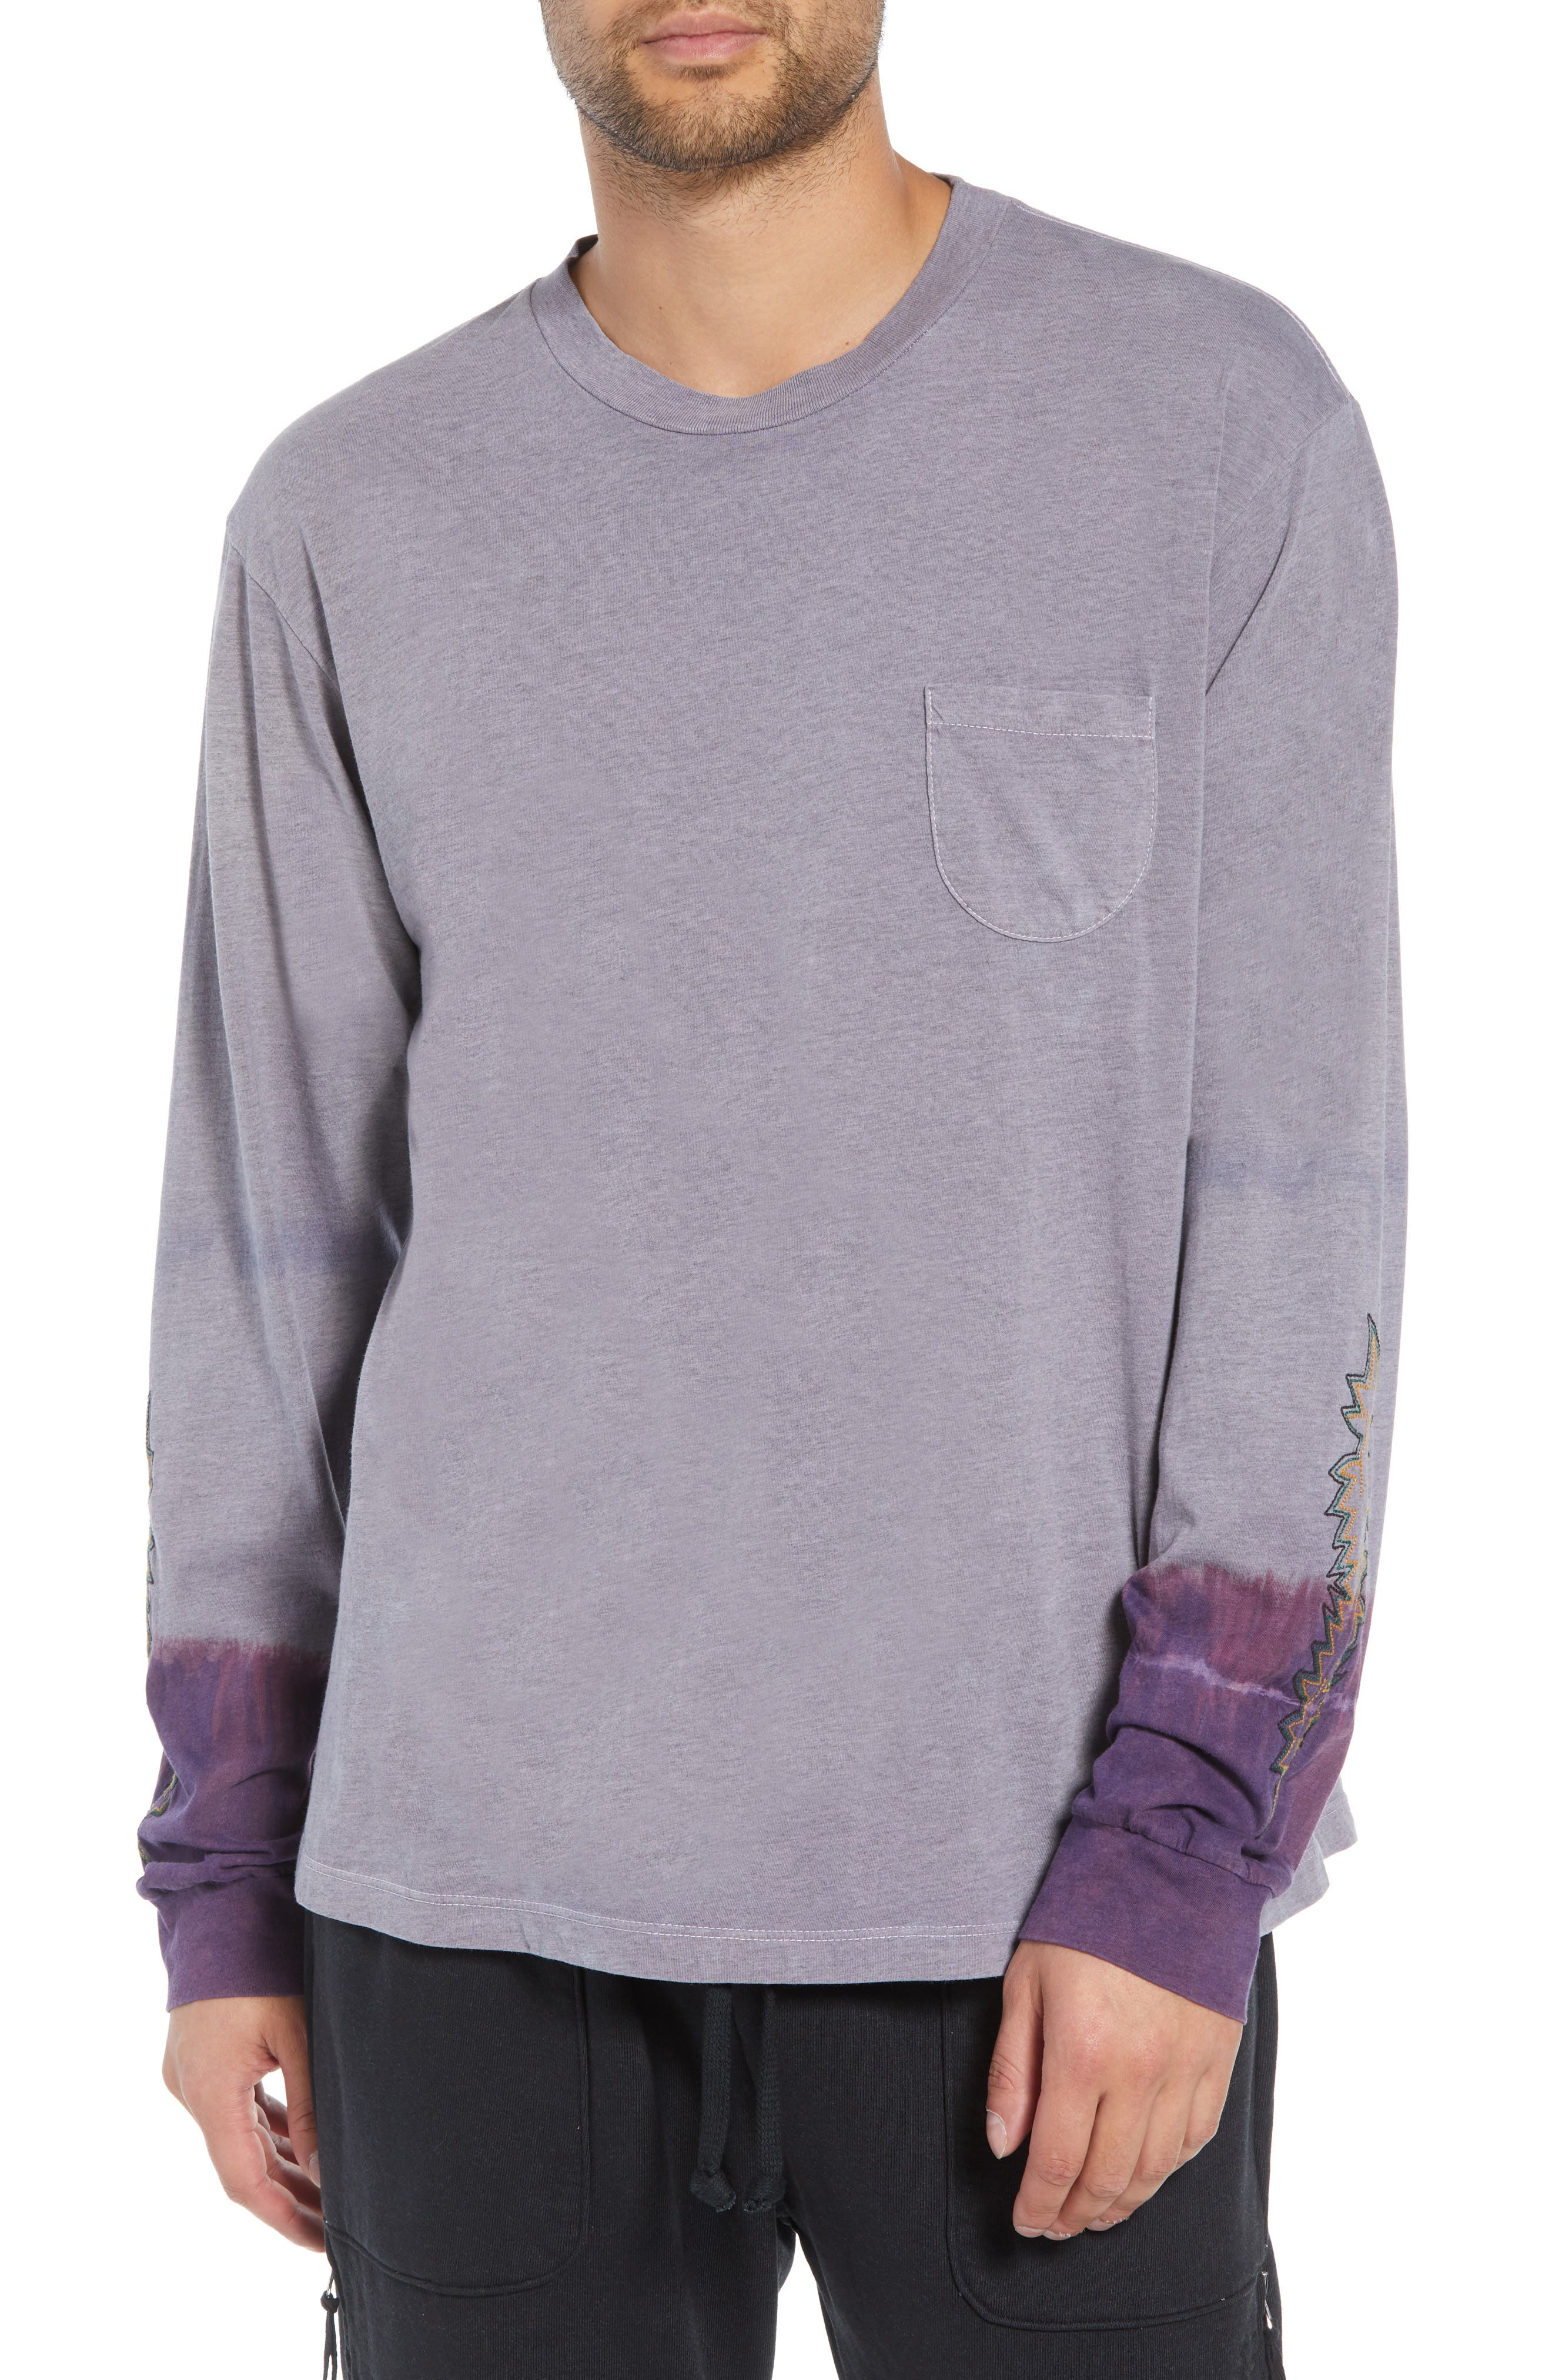 Kojak Pocket T-Shirt,                         Main,                         color, PURPLE ASH